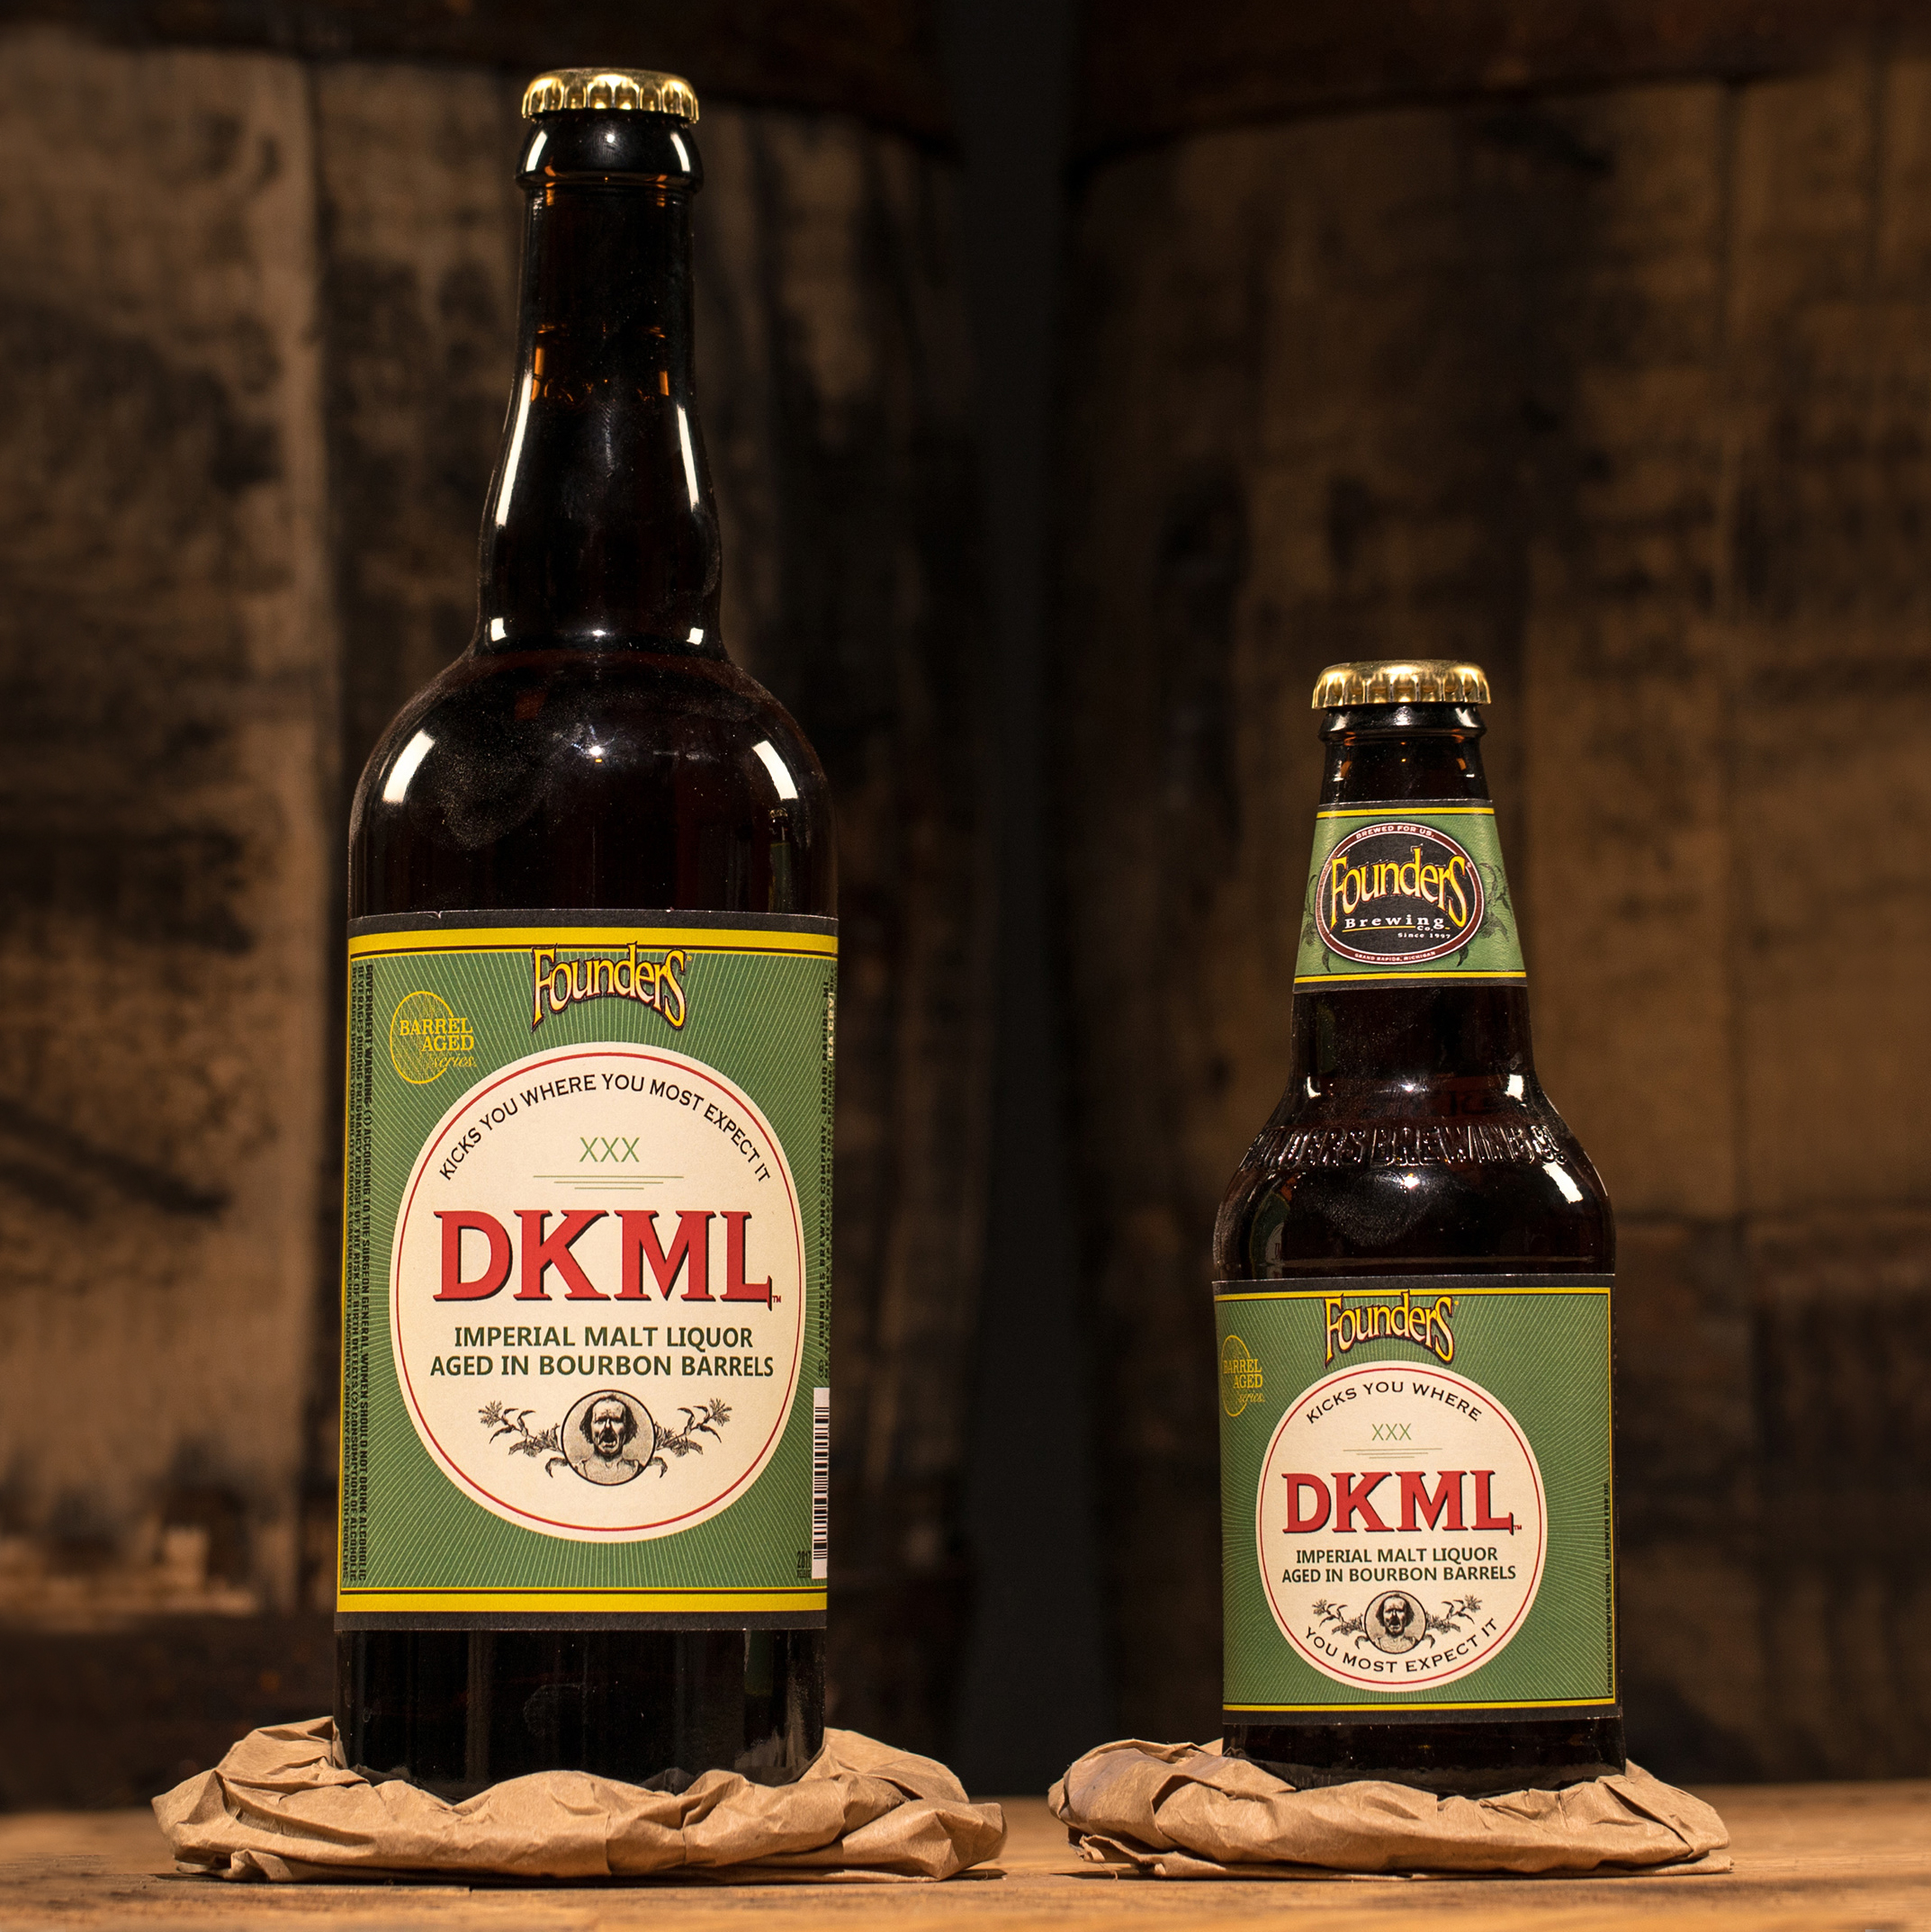 Two different sized bottles of Founders DKML